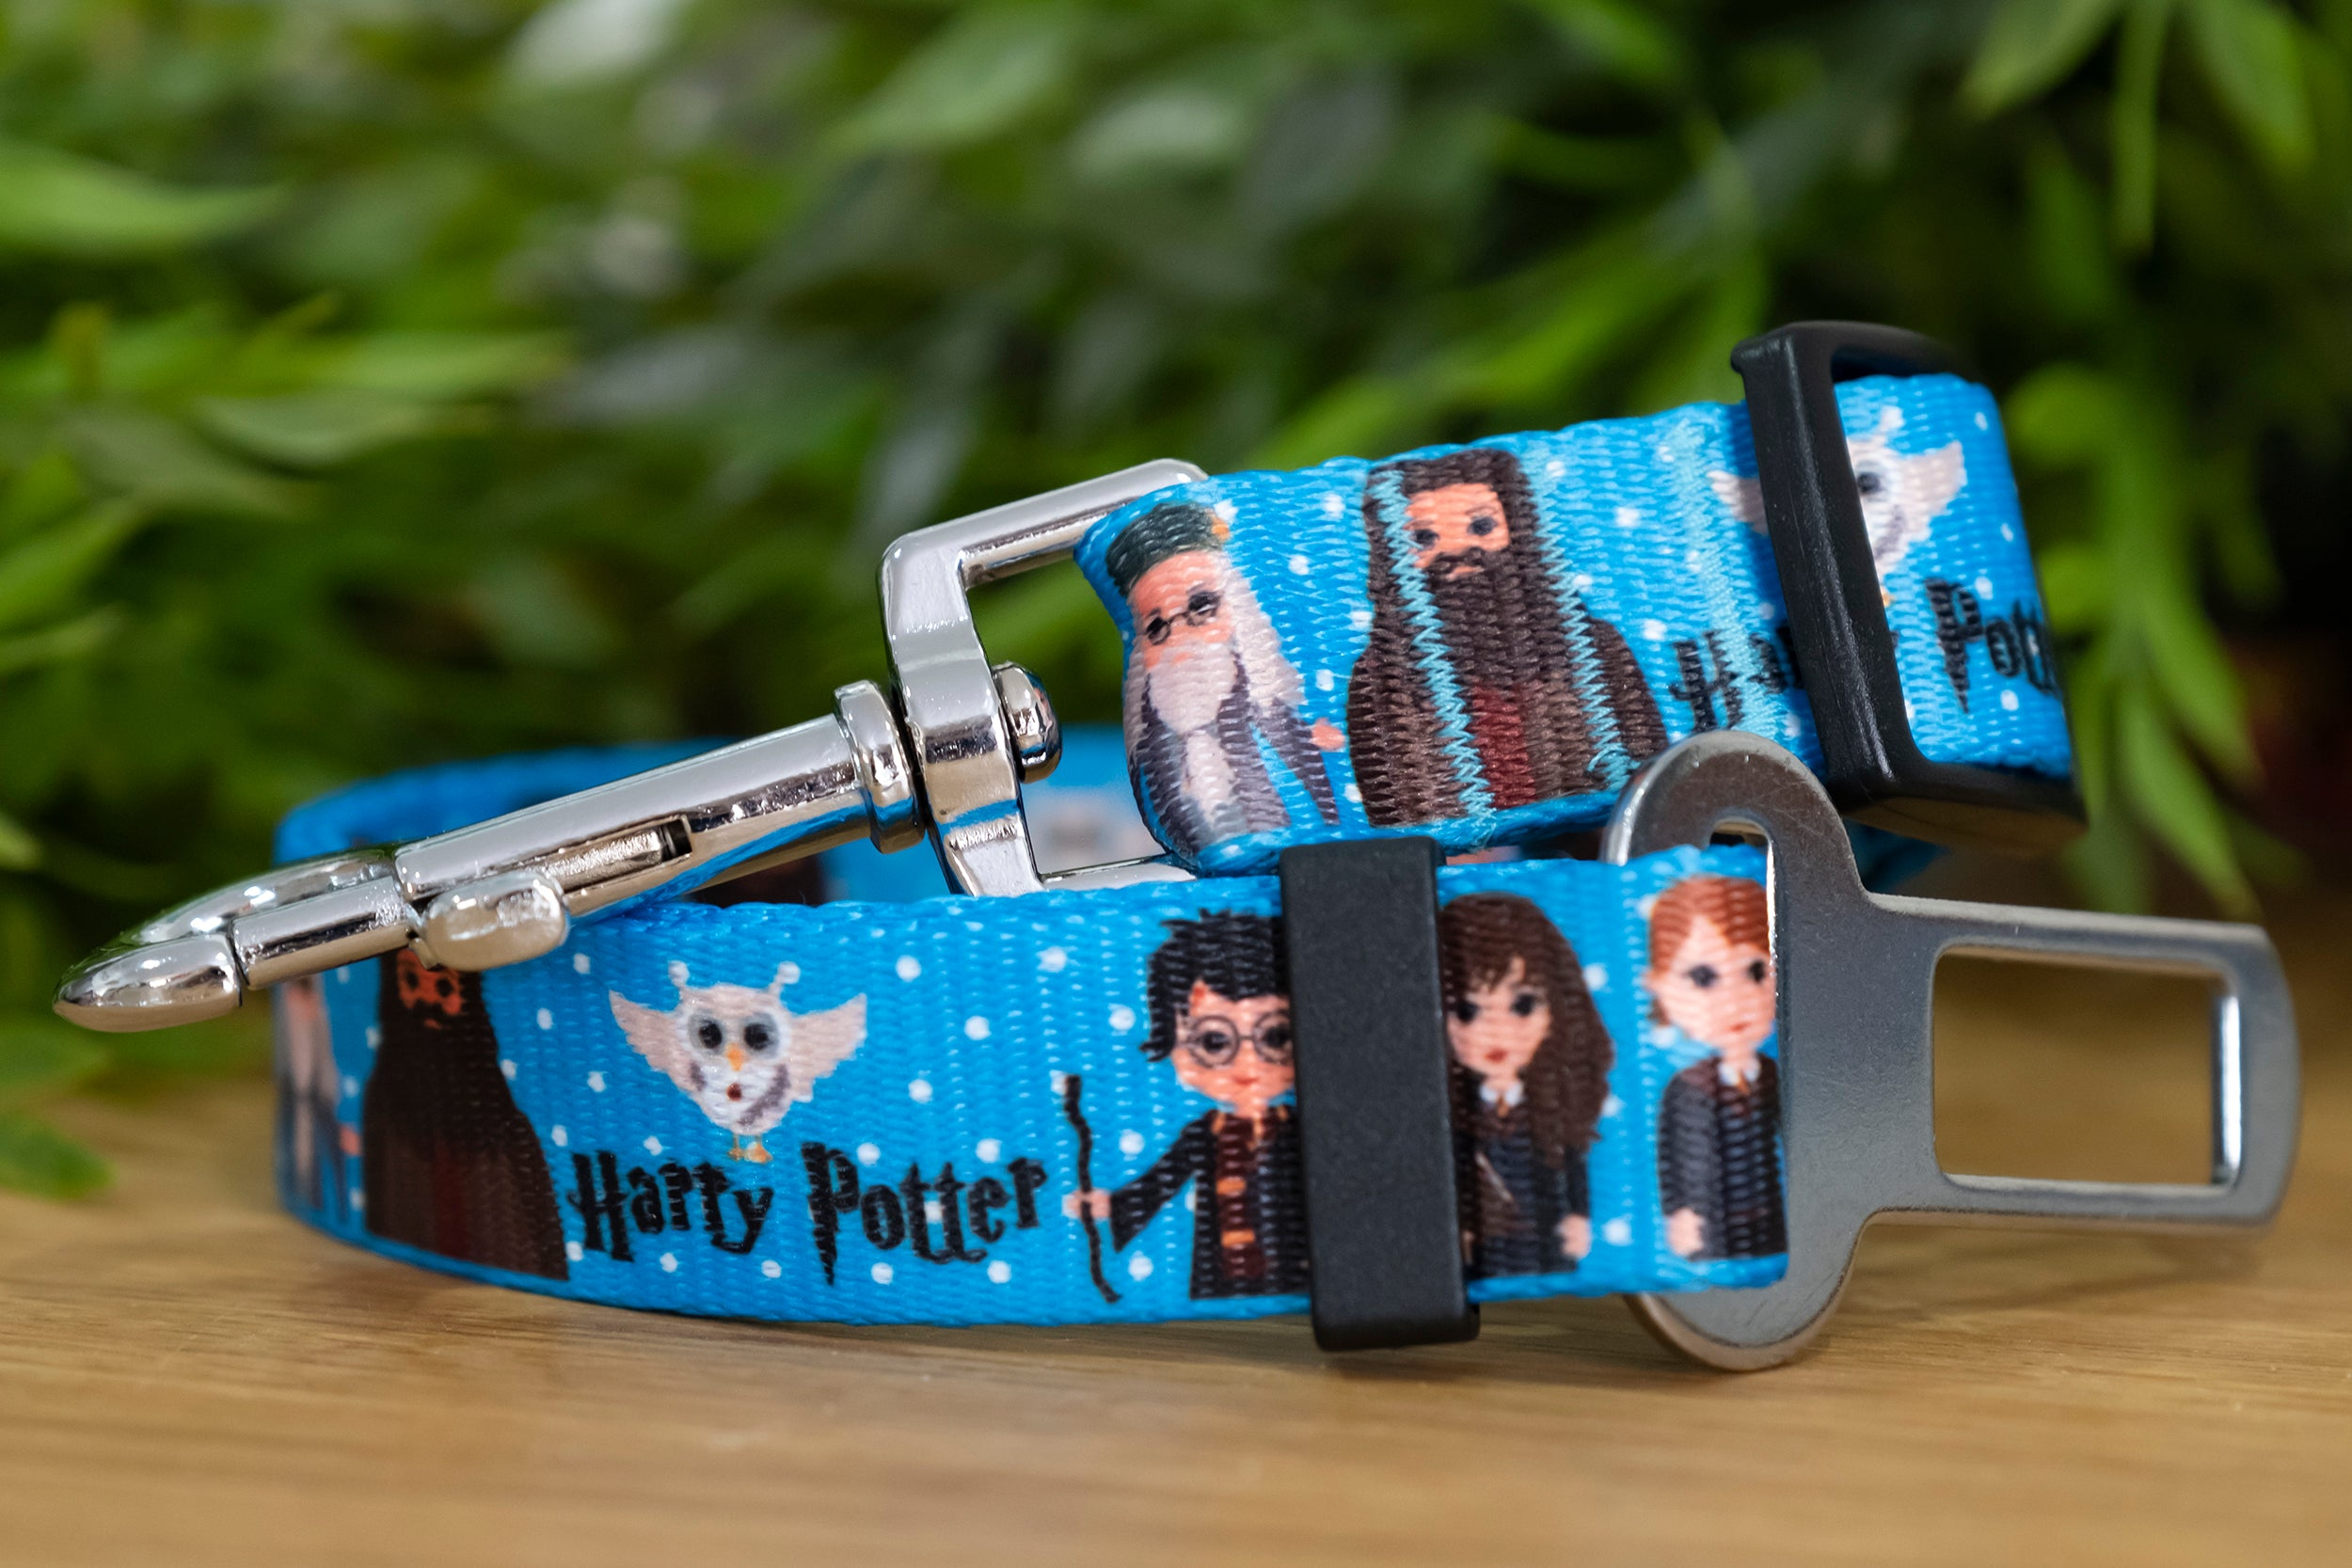 Dog Car Seatbelt / Dog Car Restraint Tether - Harry Potter (Handmade to order)-Dizzy Dog Collars